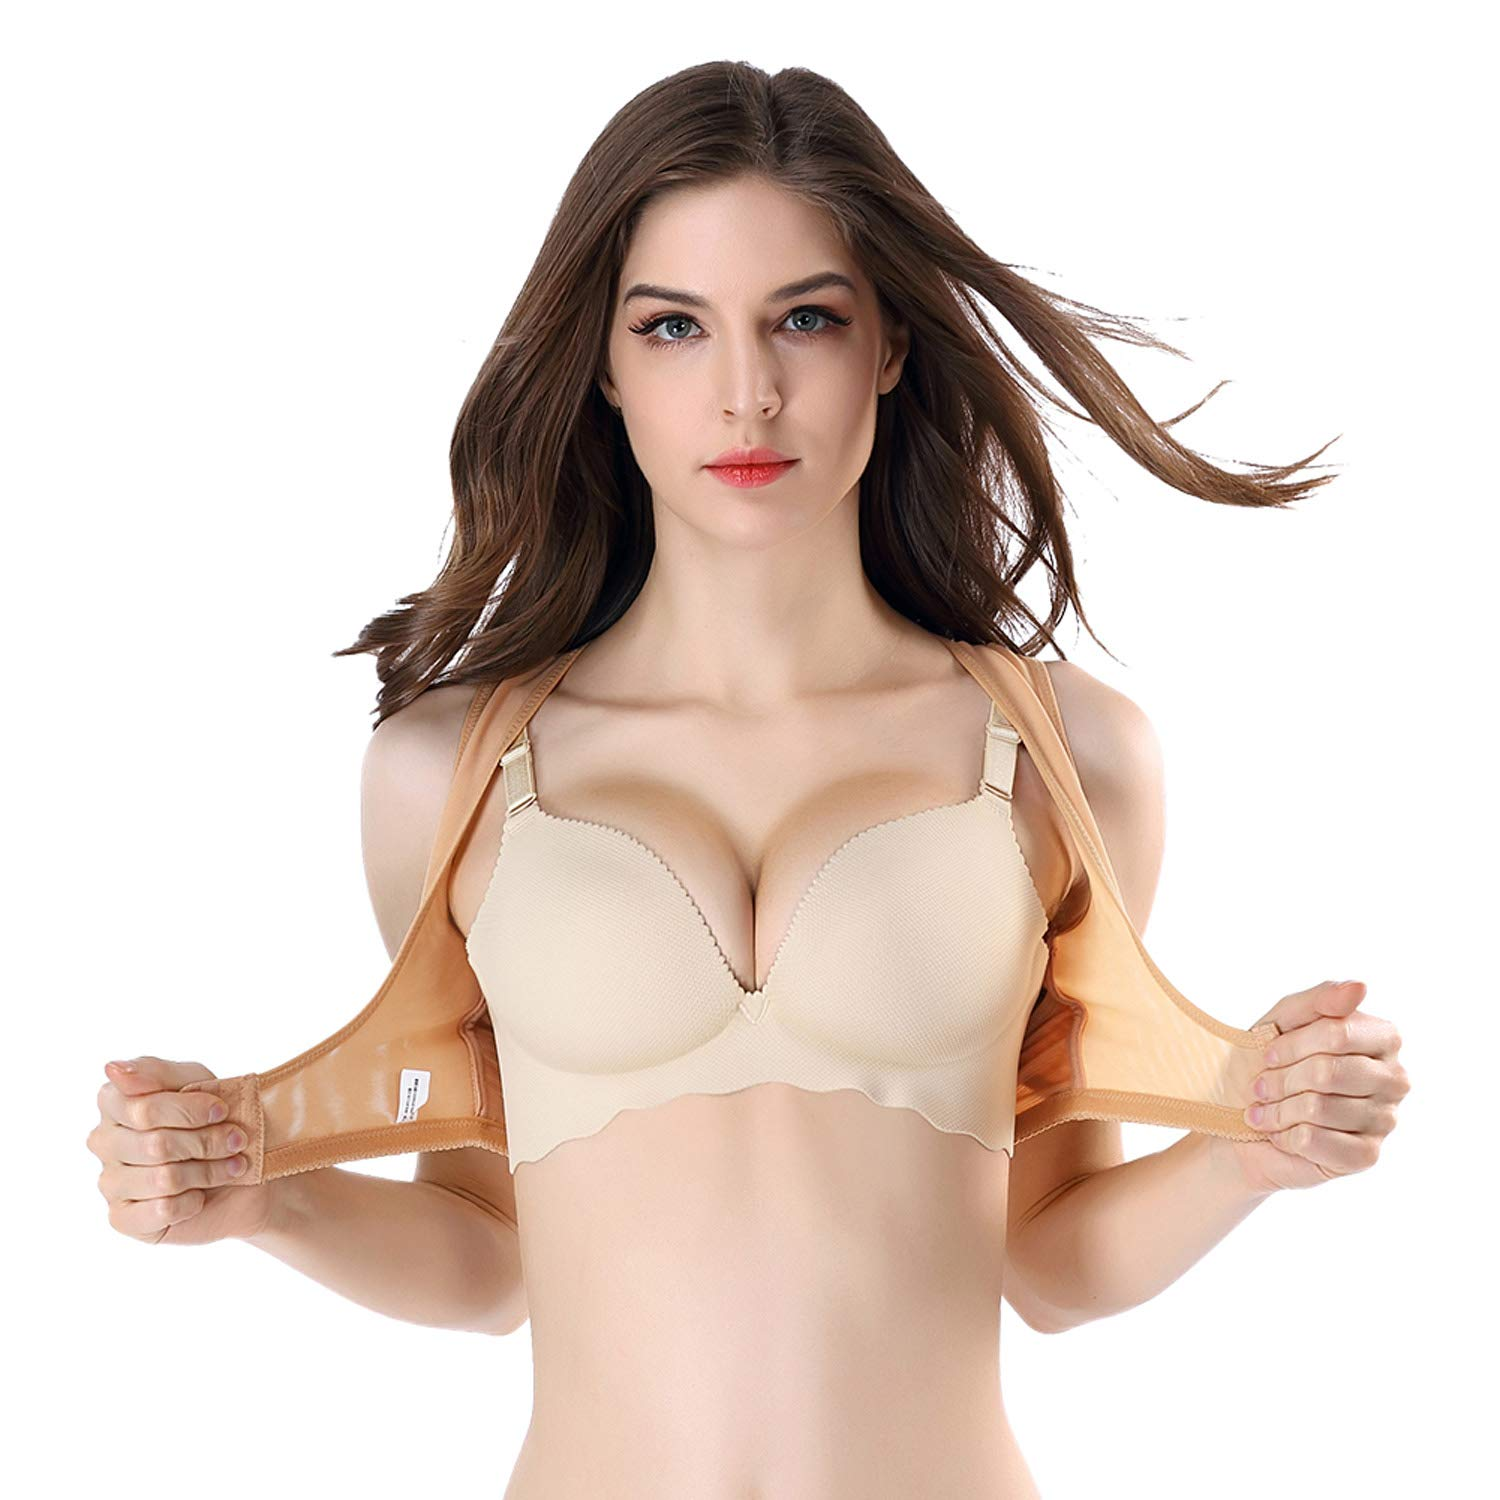 631d13c08632b Queenral Women s Chest Push-Up Magic Bra Shaper Chest Orthosis Gather  Shapewear Vest  Amazon.ca  Clothing   Accessories